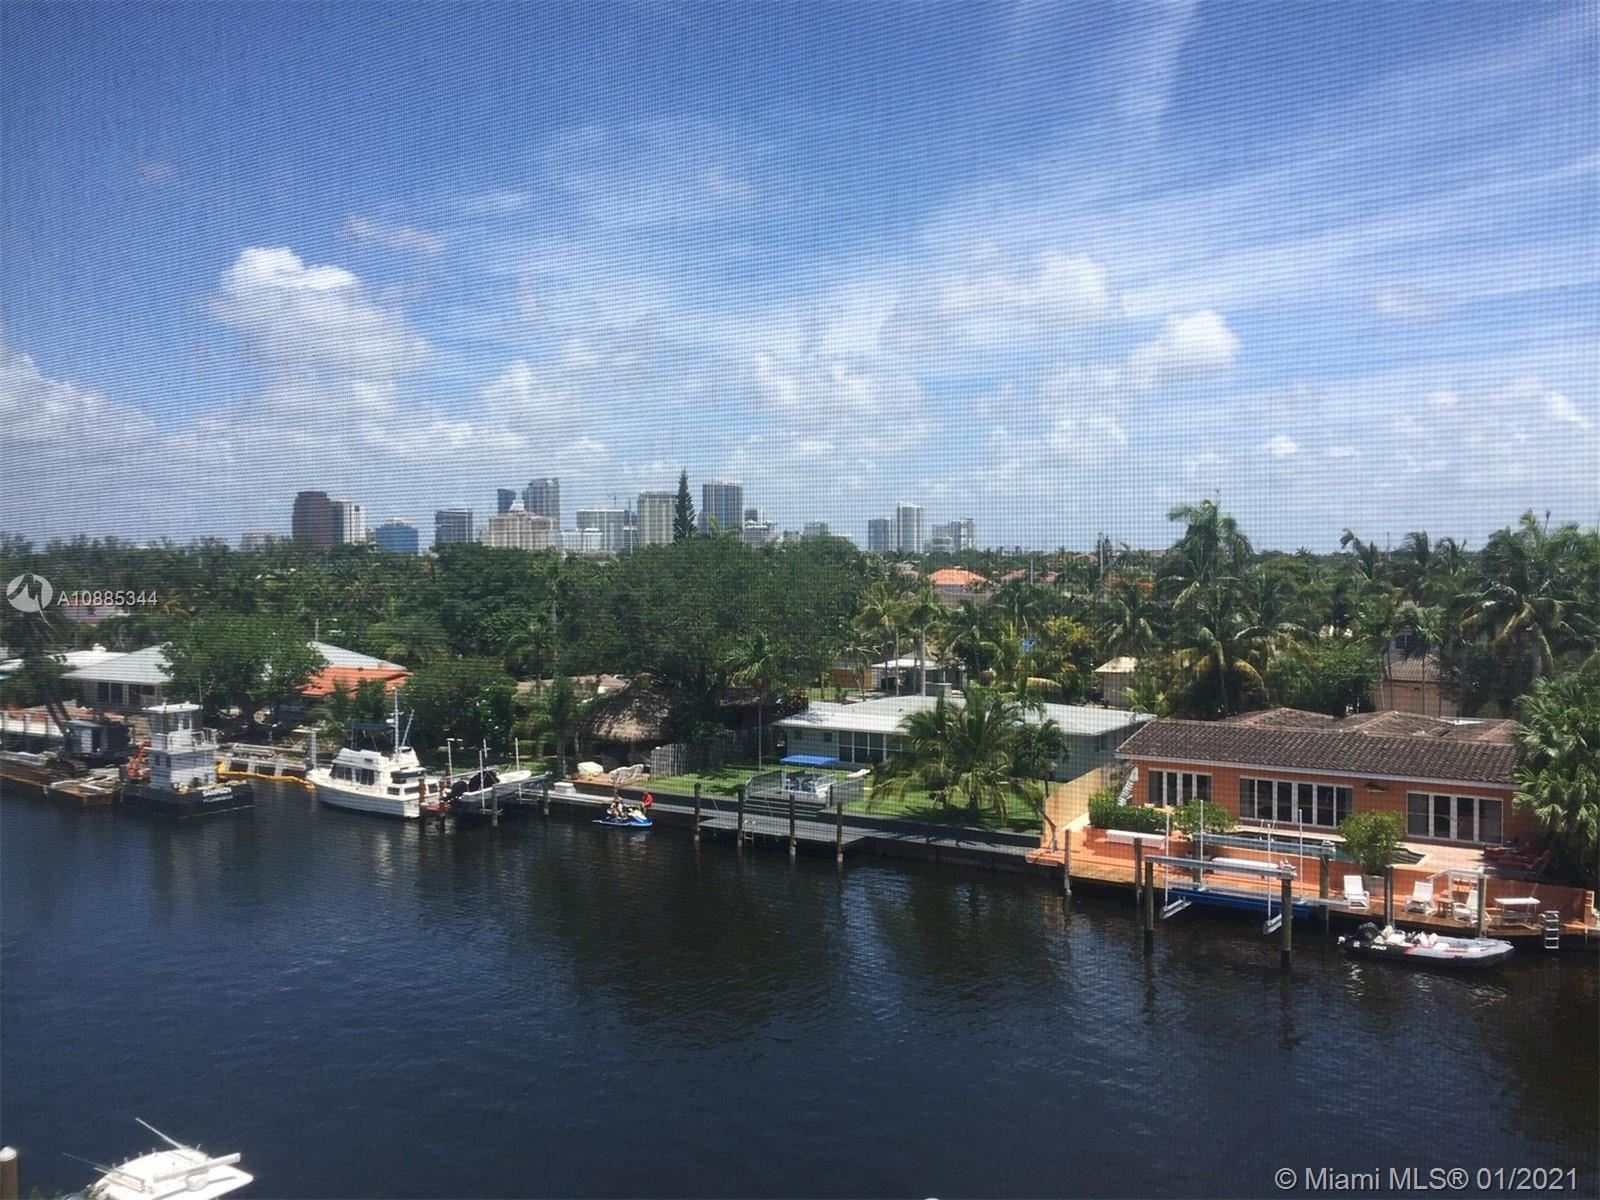 Photo of 1617 SE 15th St #505, Fort Lauderdale, FL 33316 (MLS # A10885344)